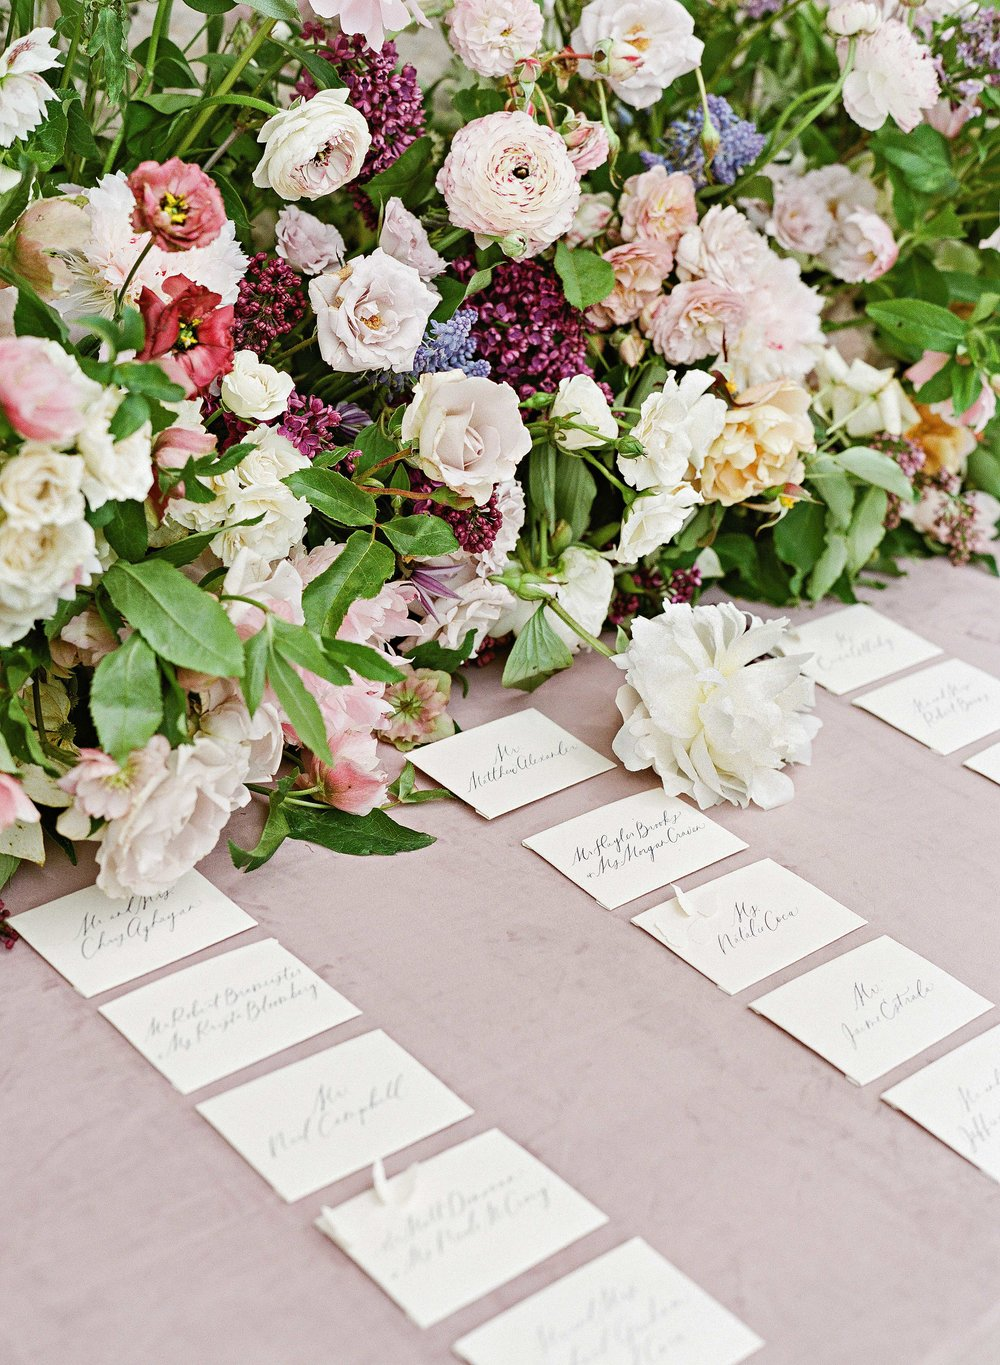 rebecca-clay-wedding-north-carolina-escort-cards-103228808.jpg